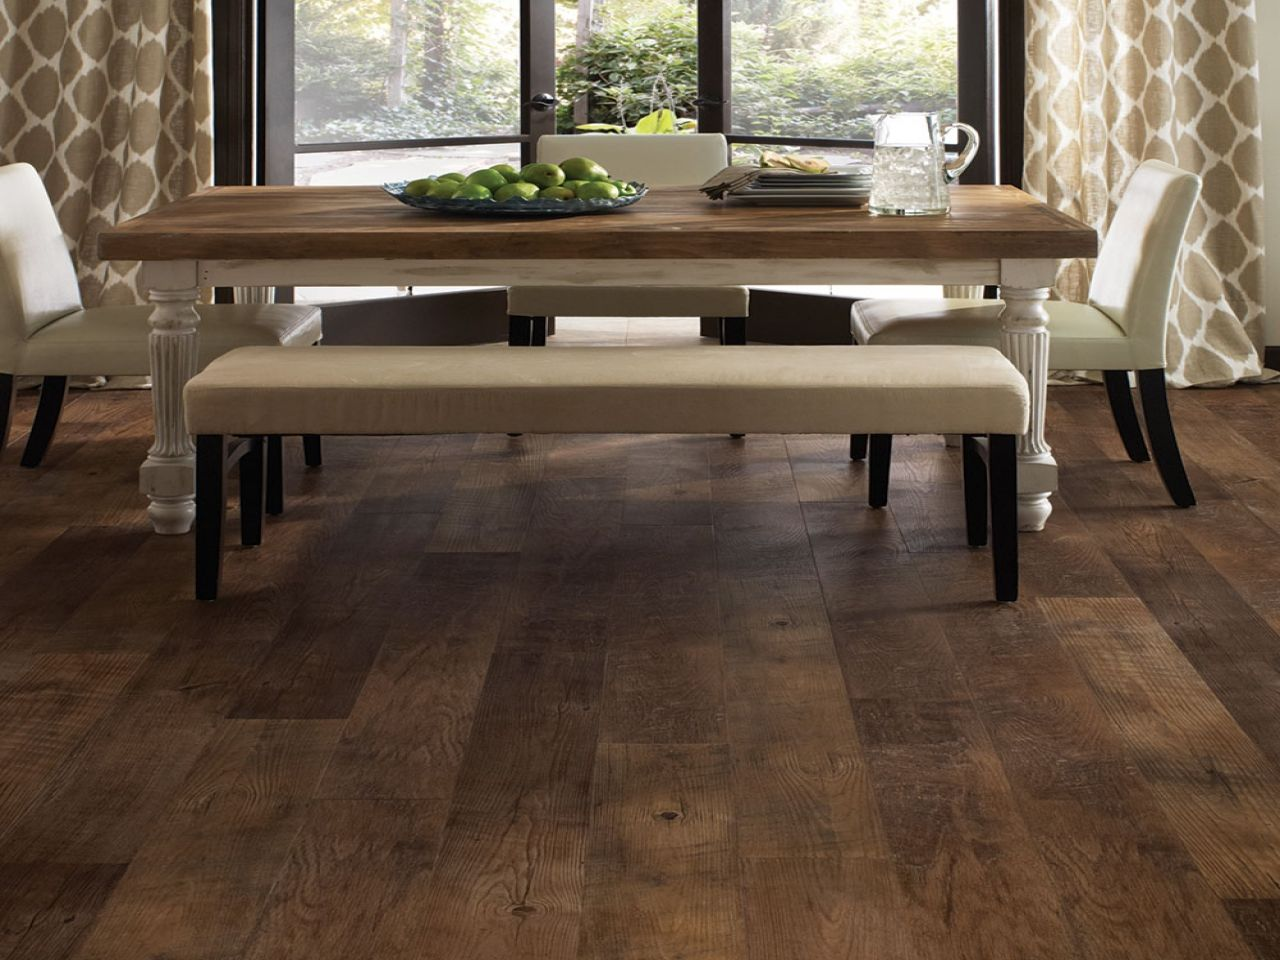 Luxury Vinyl Floors By Burke At James Carpets Of Huntsville Al